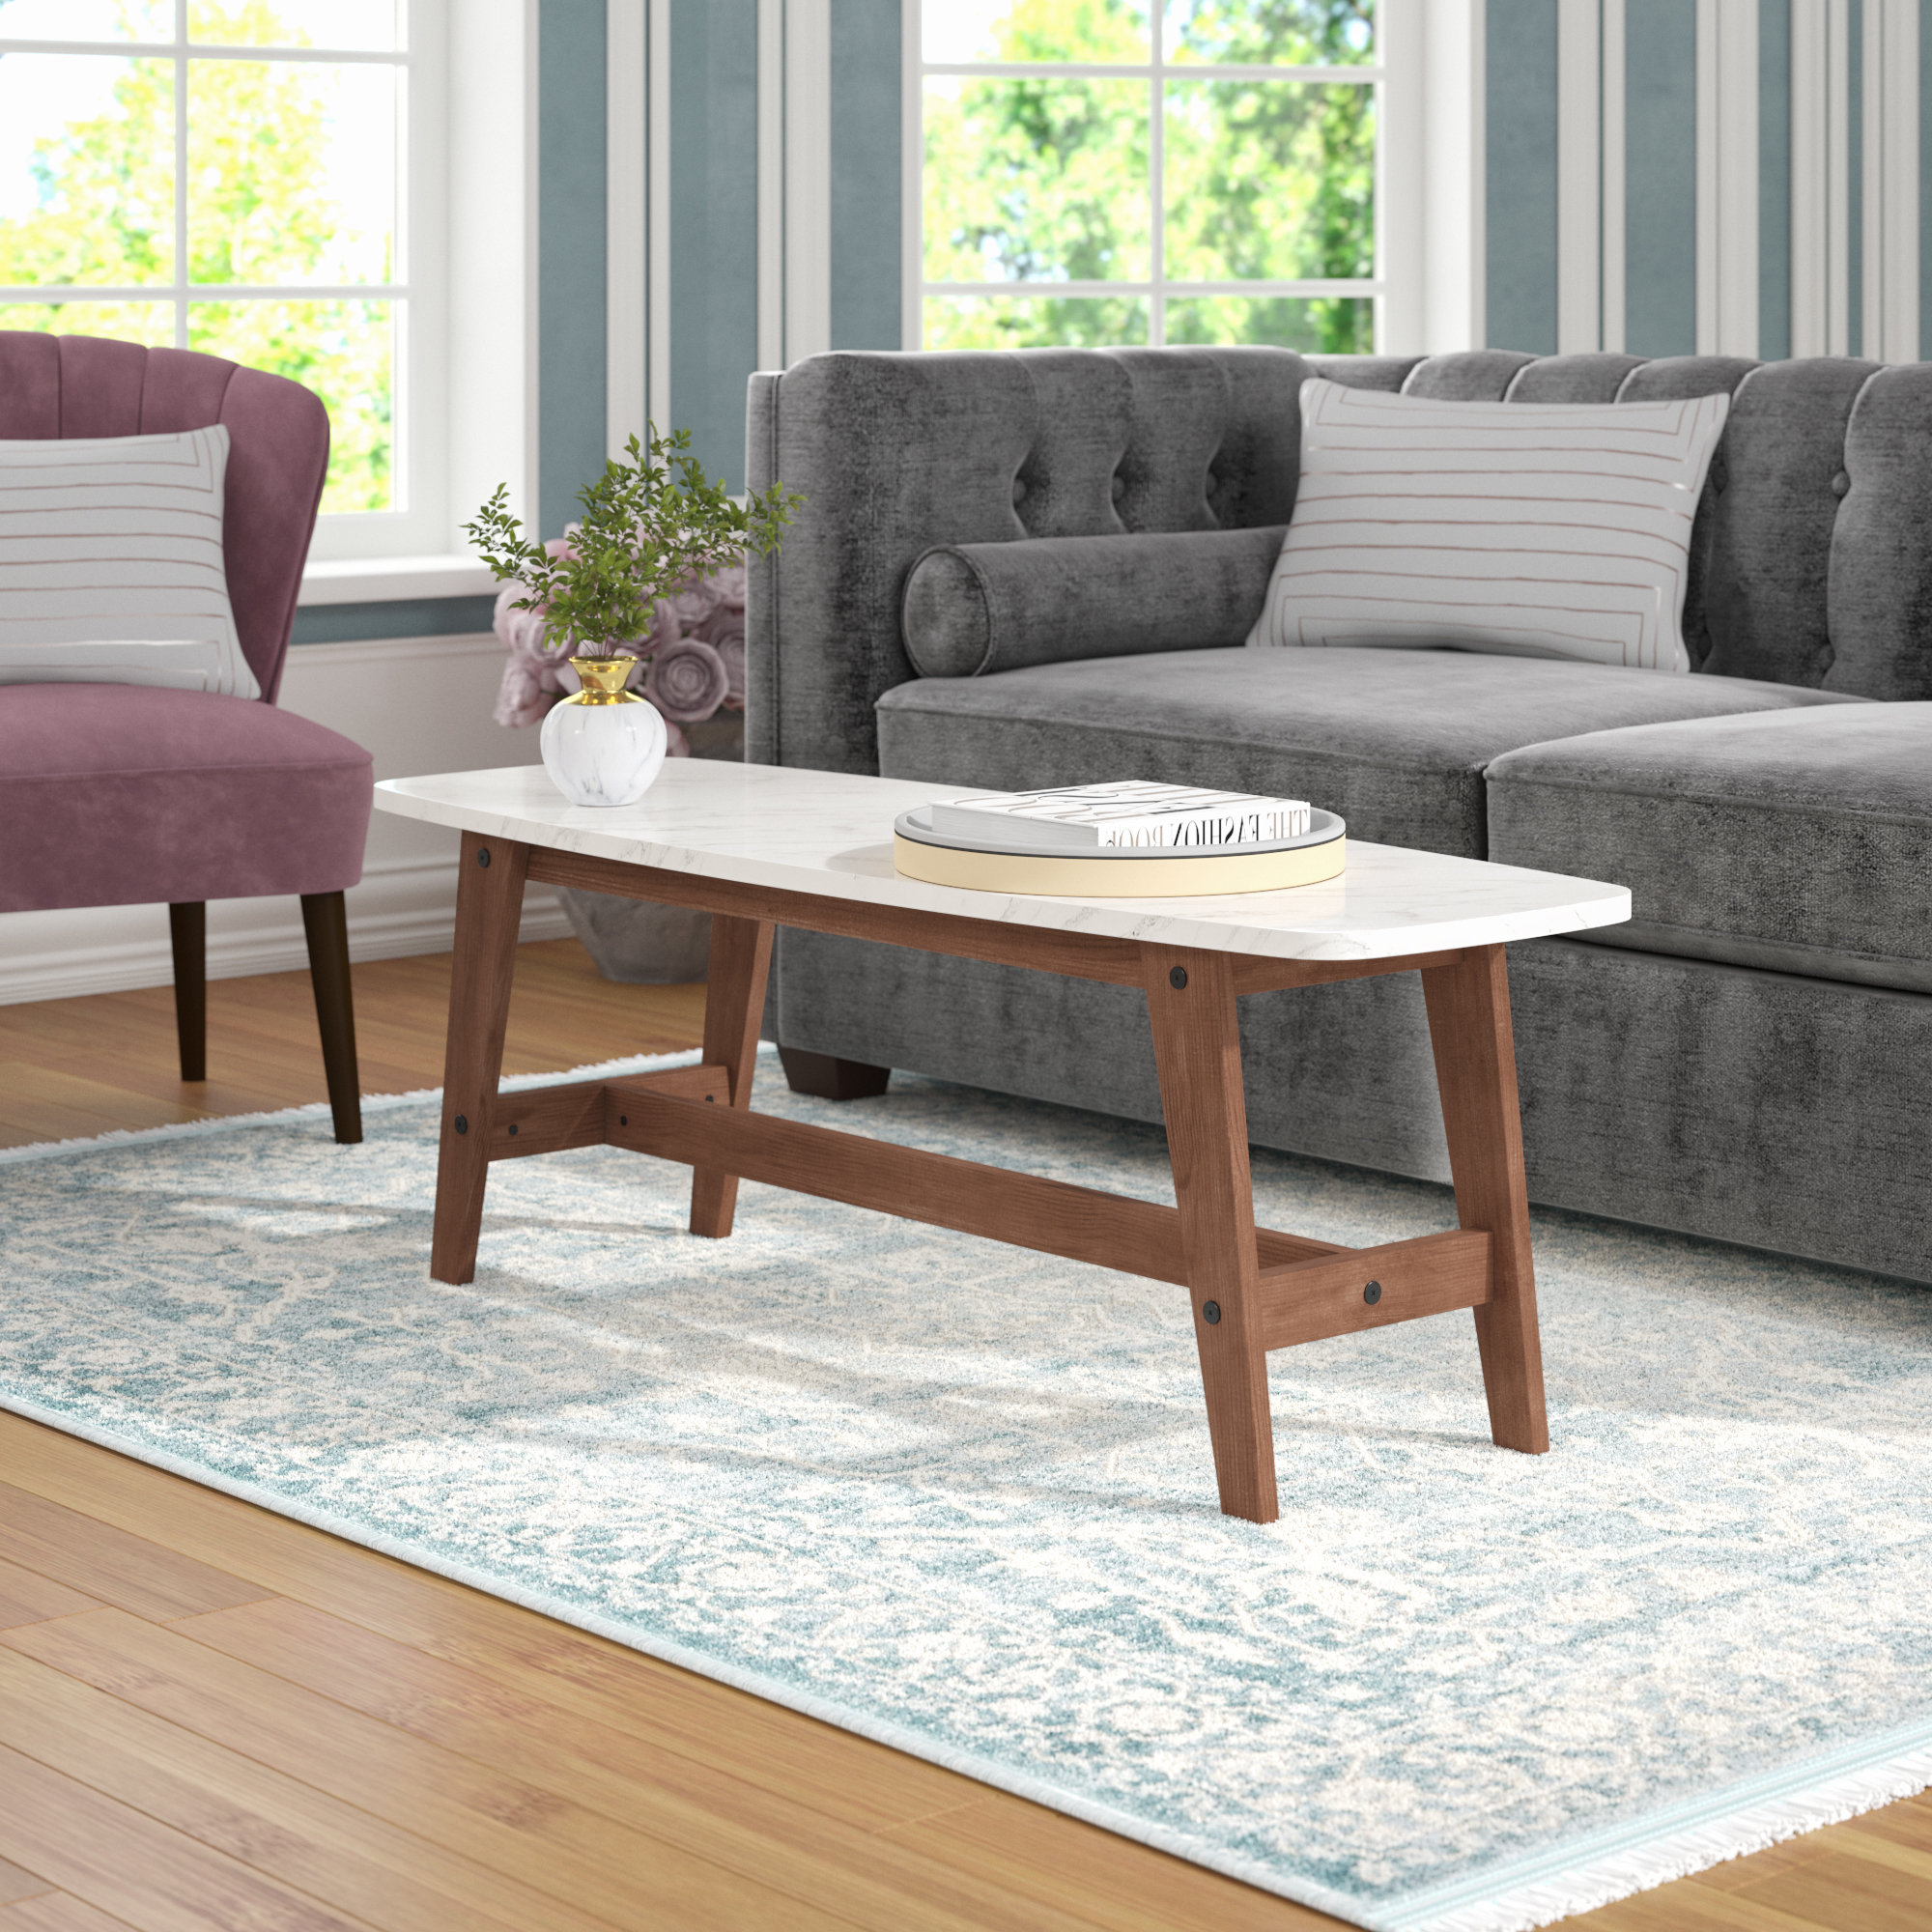 Stack Hi Gloss Wood Coffee Tables With Regard To Widely Used Mercury Row Posner Coffee Table & Reviews (View 16 of 20)